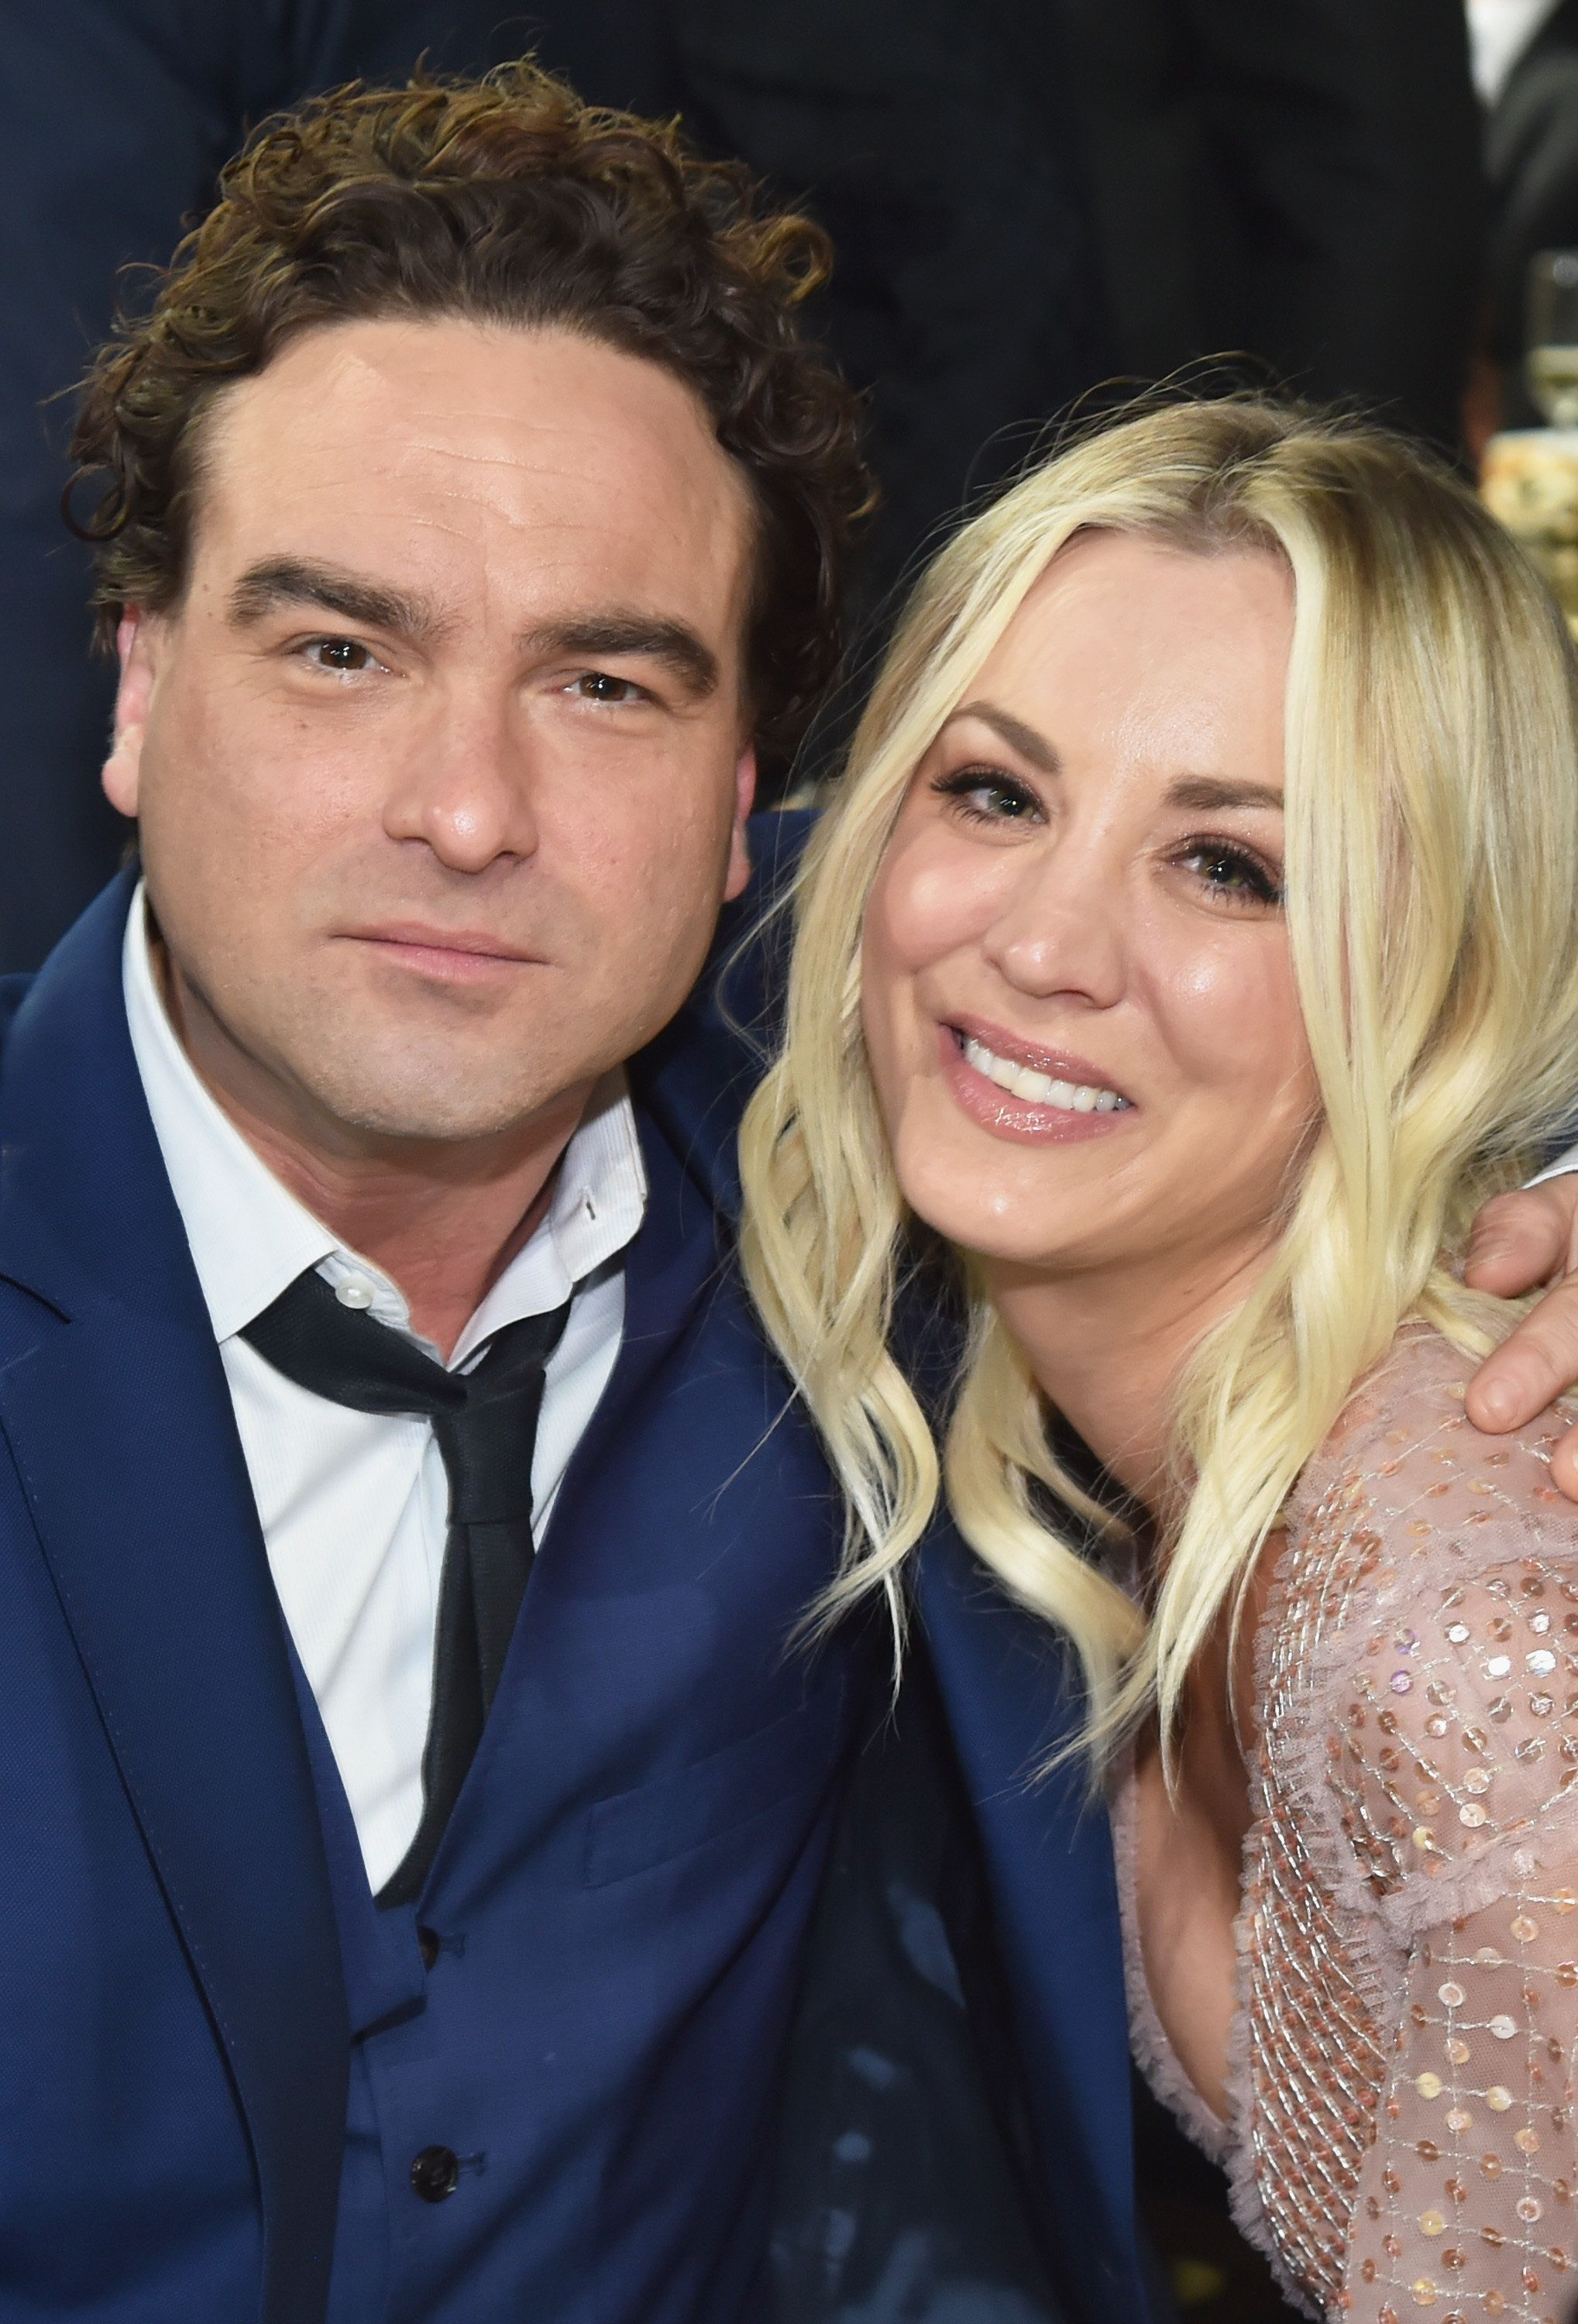 Kaley Cuoco Left 'Drowning In Tears' After News 'The Big Bang Theory' Is To